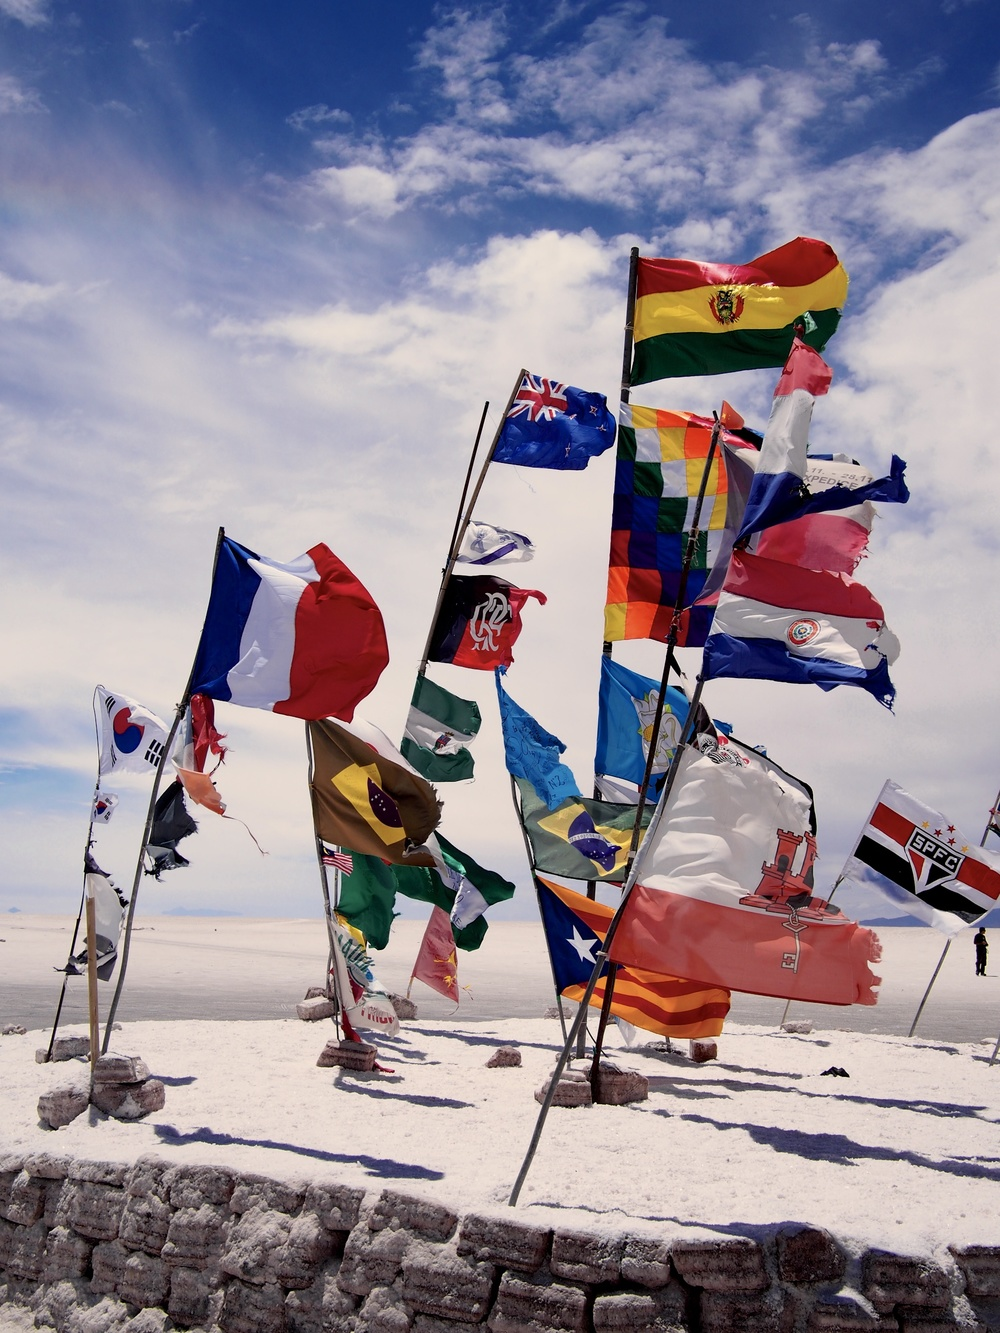 World flags outside Hotel de Sal, the original salt hotel